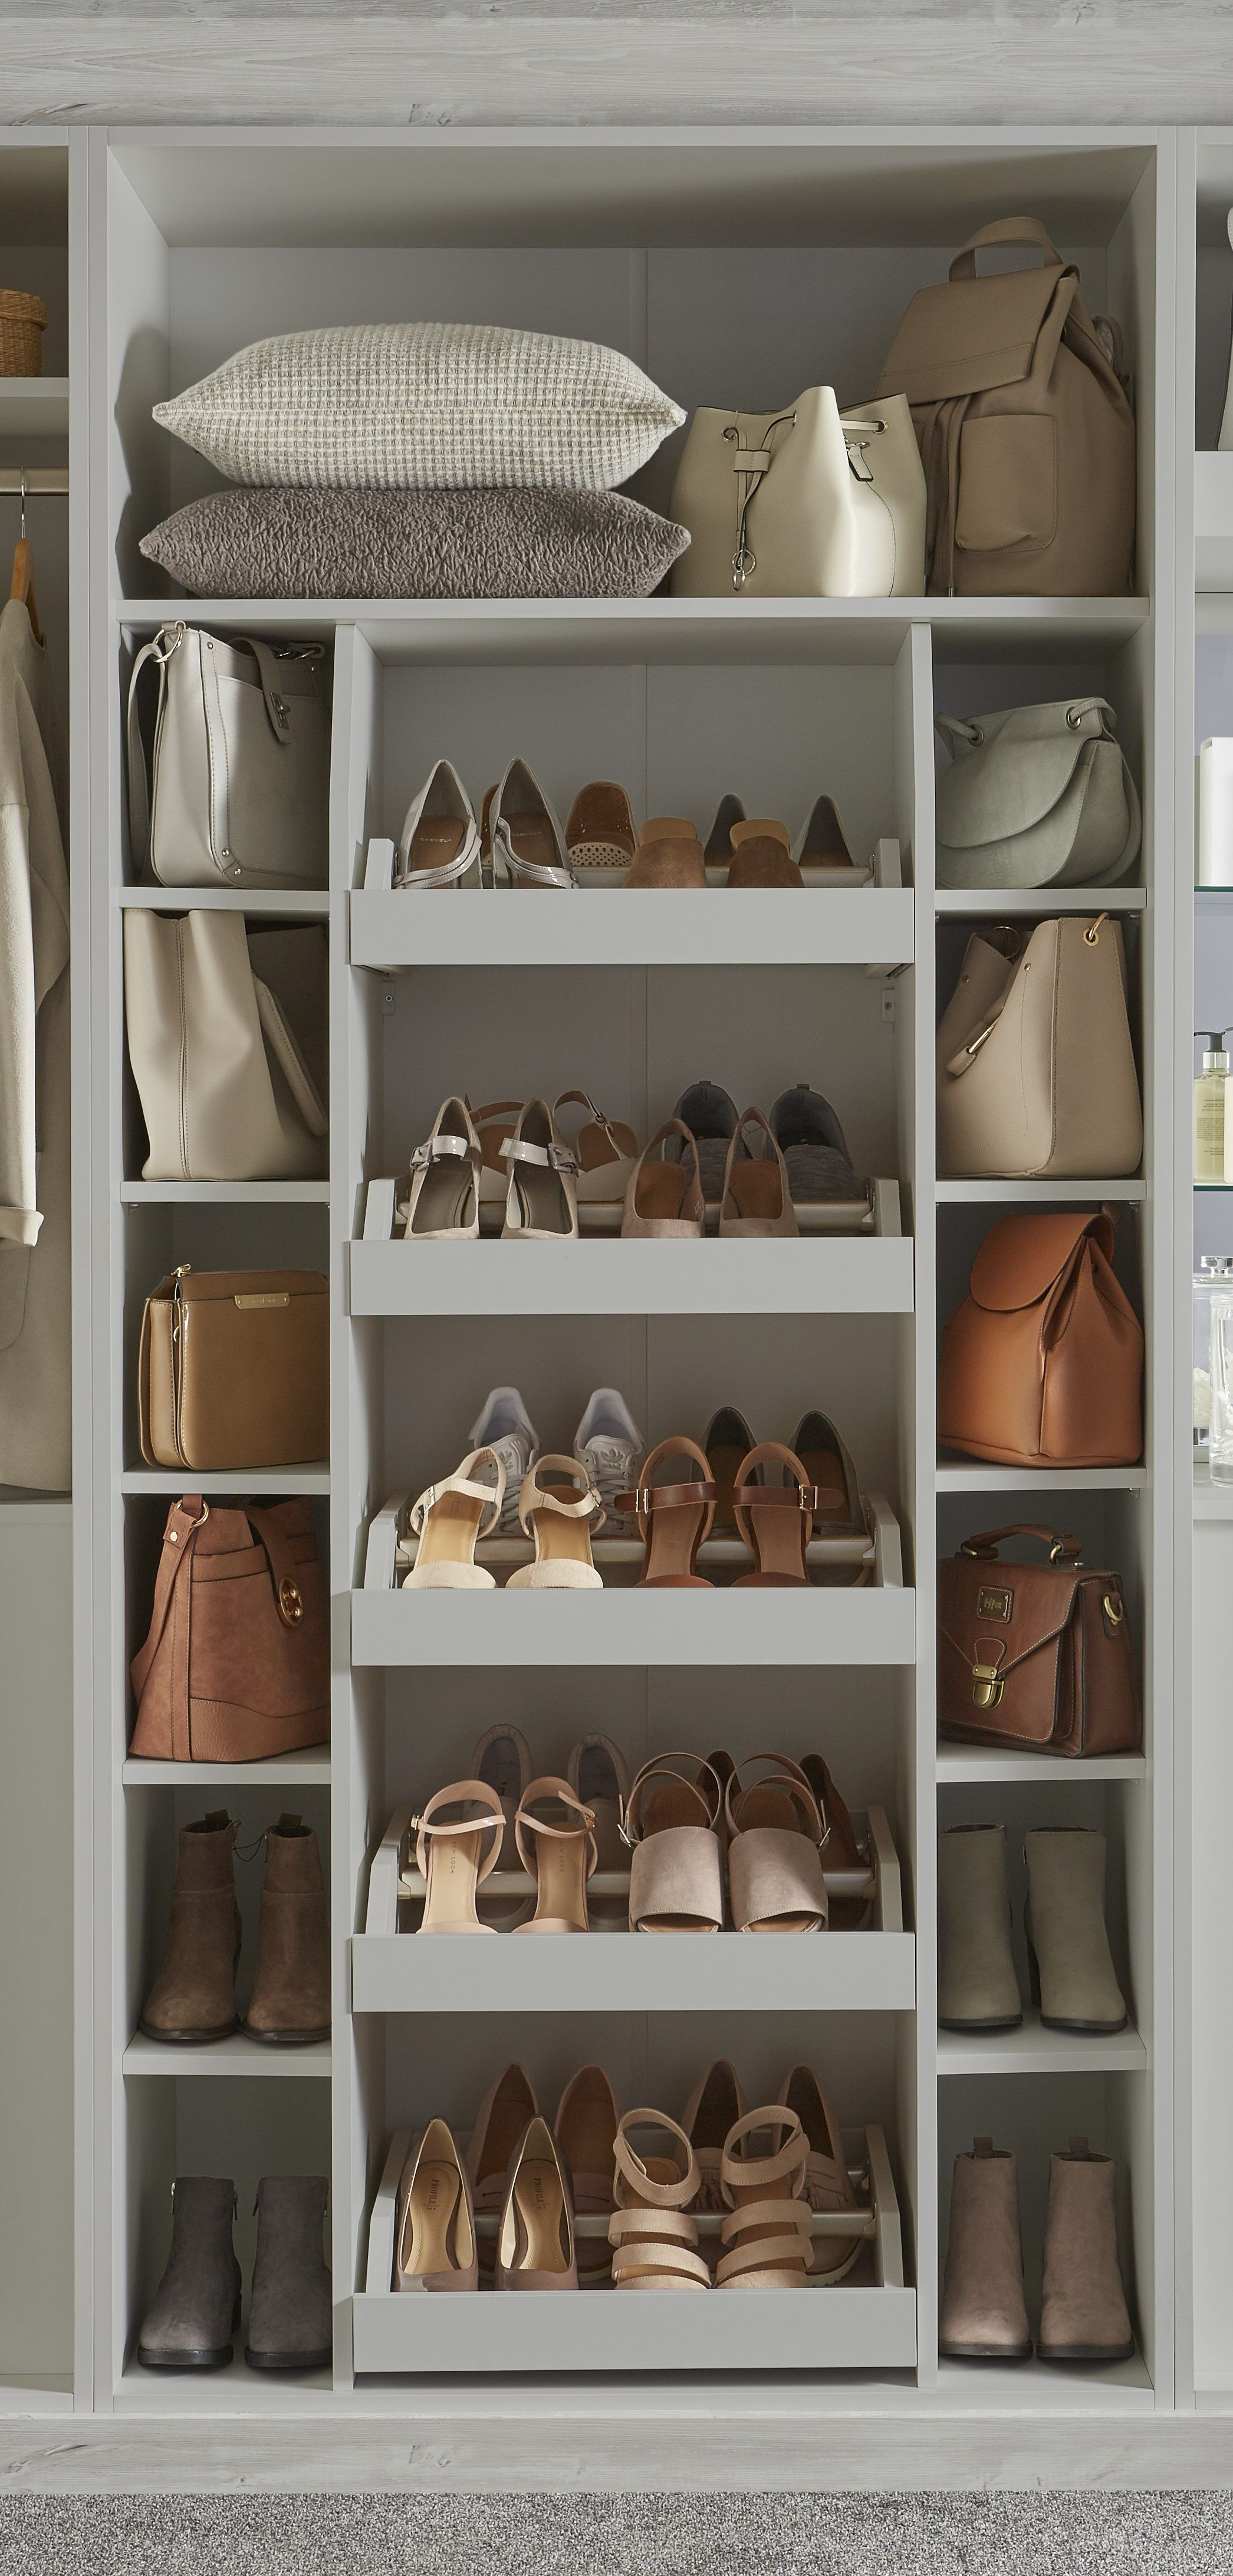 Bespoke Storage Solutions From My Fitted Bedroom Go Beyond Hanging